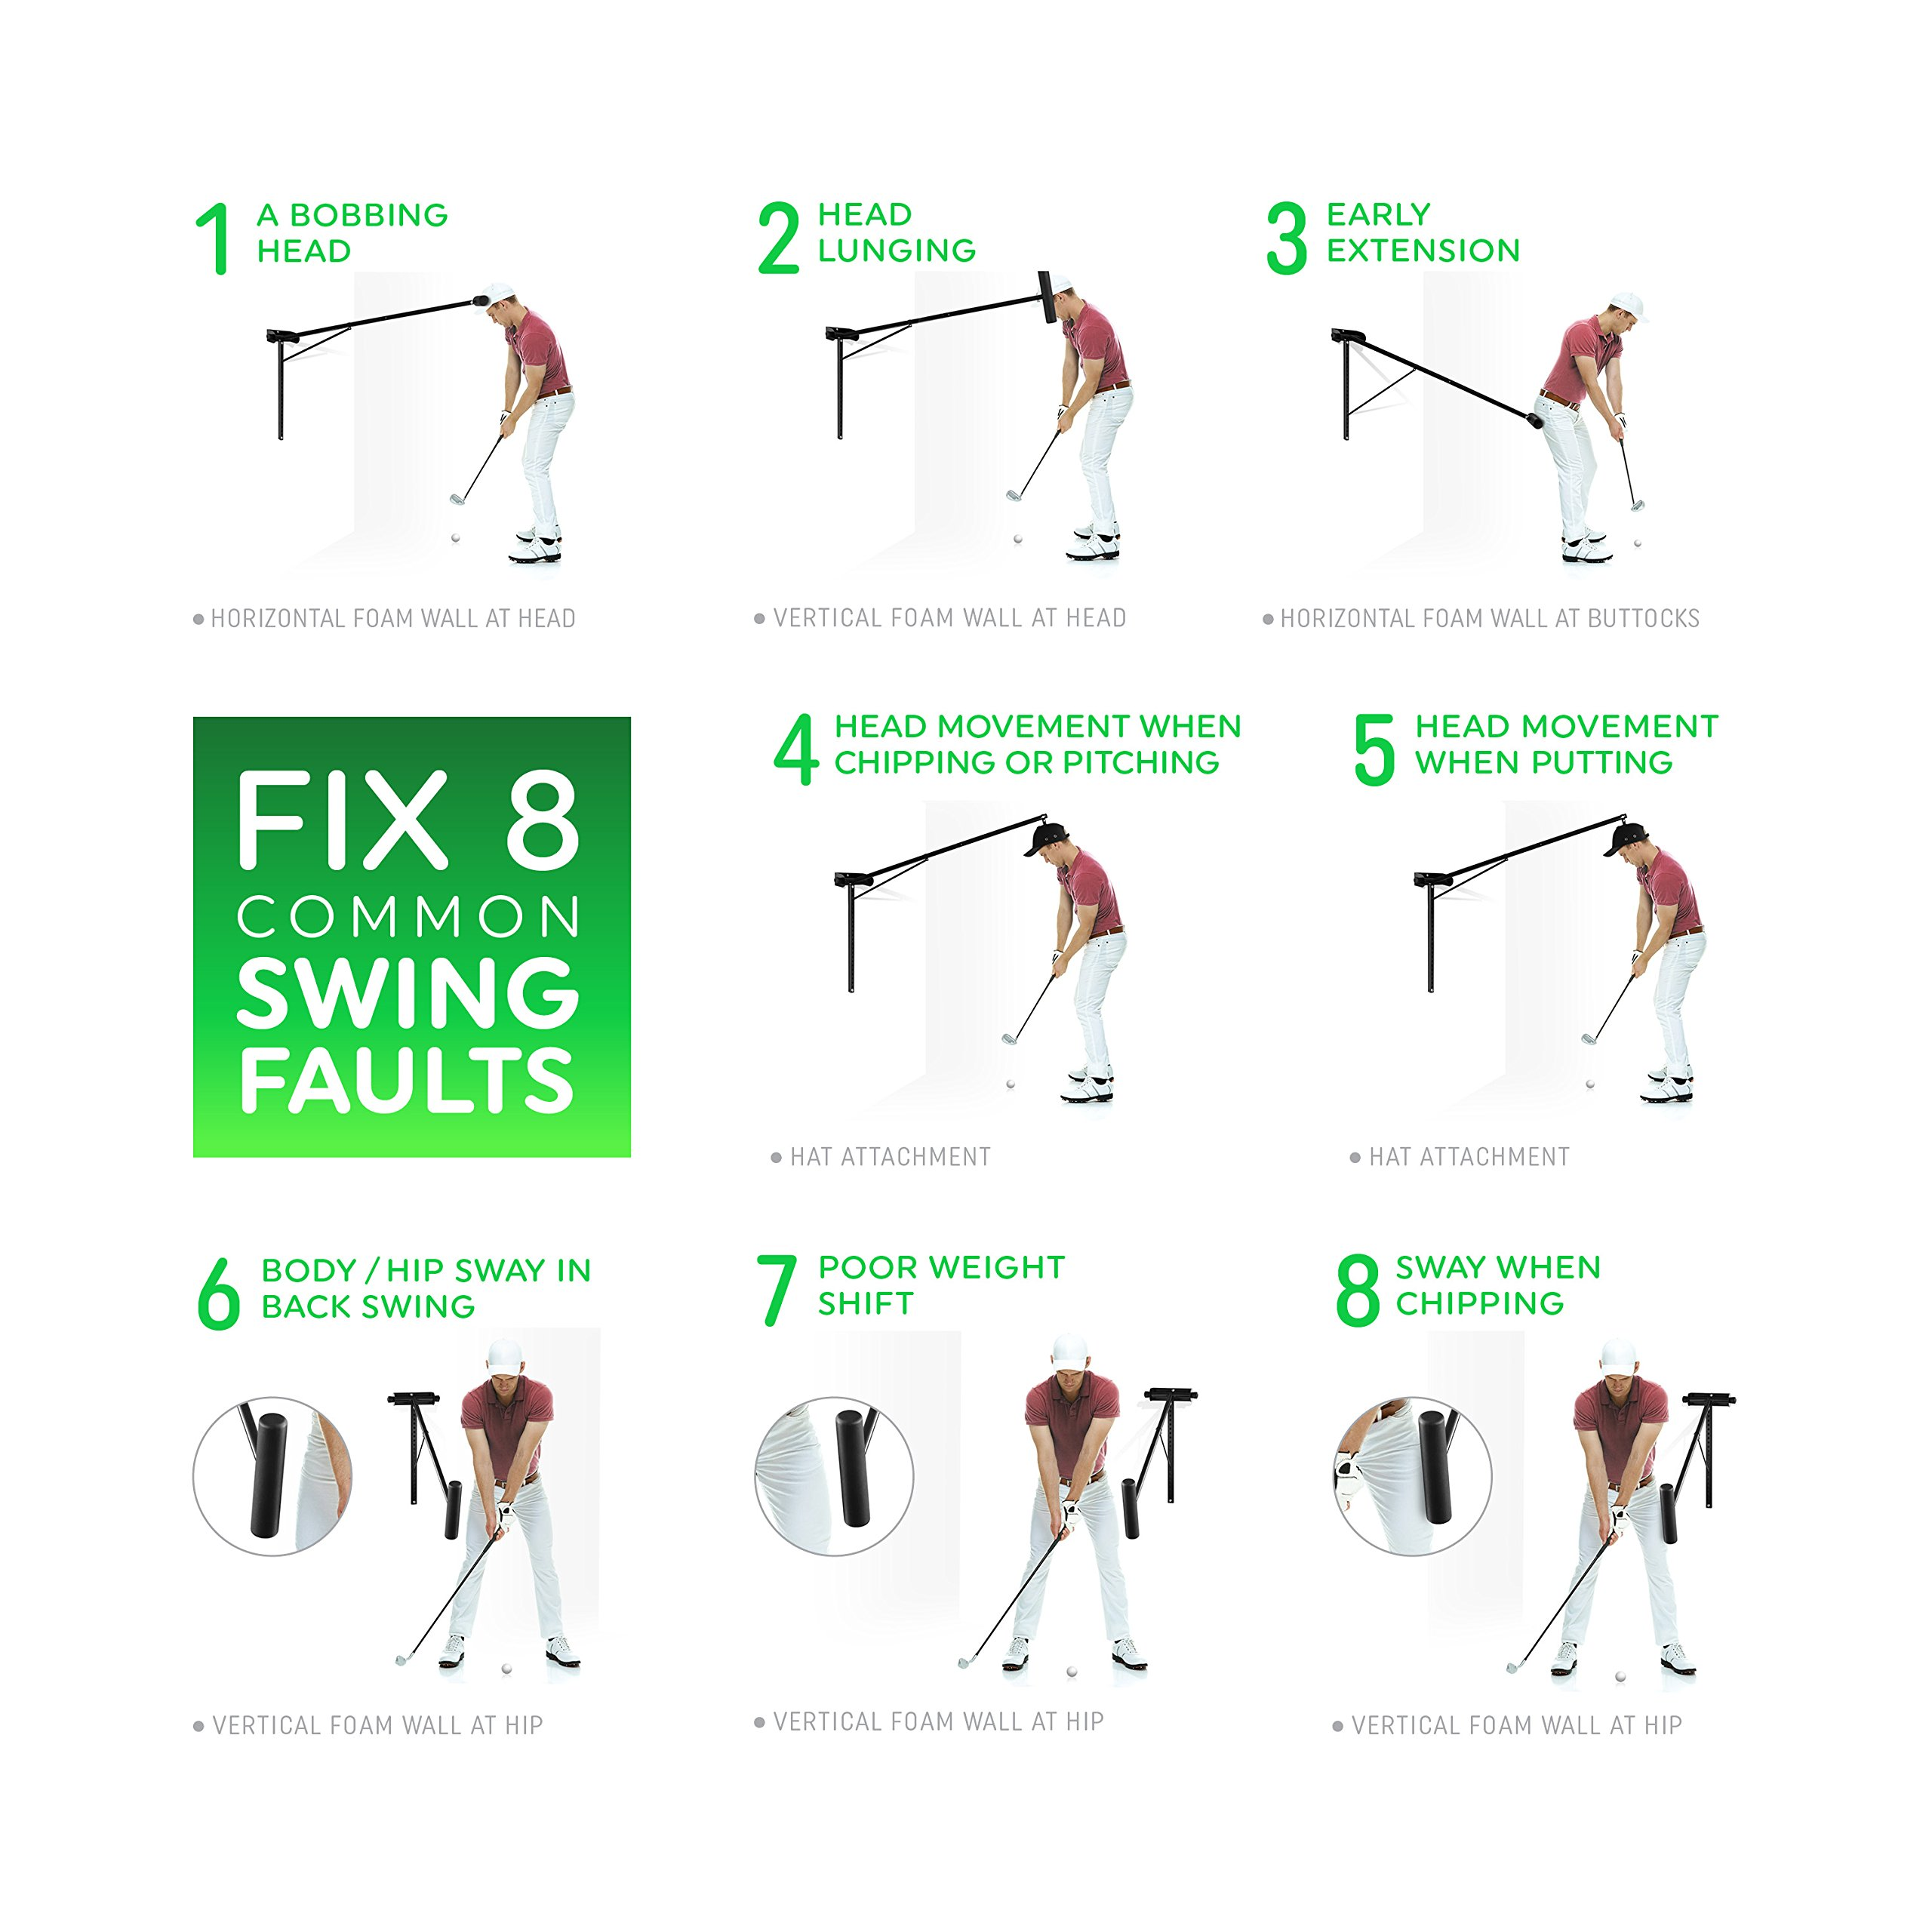 Golf Swing Trainer PRO-HEAD - Wall or Tree Golf Training Aid Equipment for All Golfers - Posture Correcting Tool - Fix and Keep a Steady Head, Maintain Spine Angle - Practice Indoor & Outdoor by PRO-HEAD (Image #5)